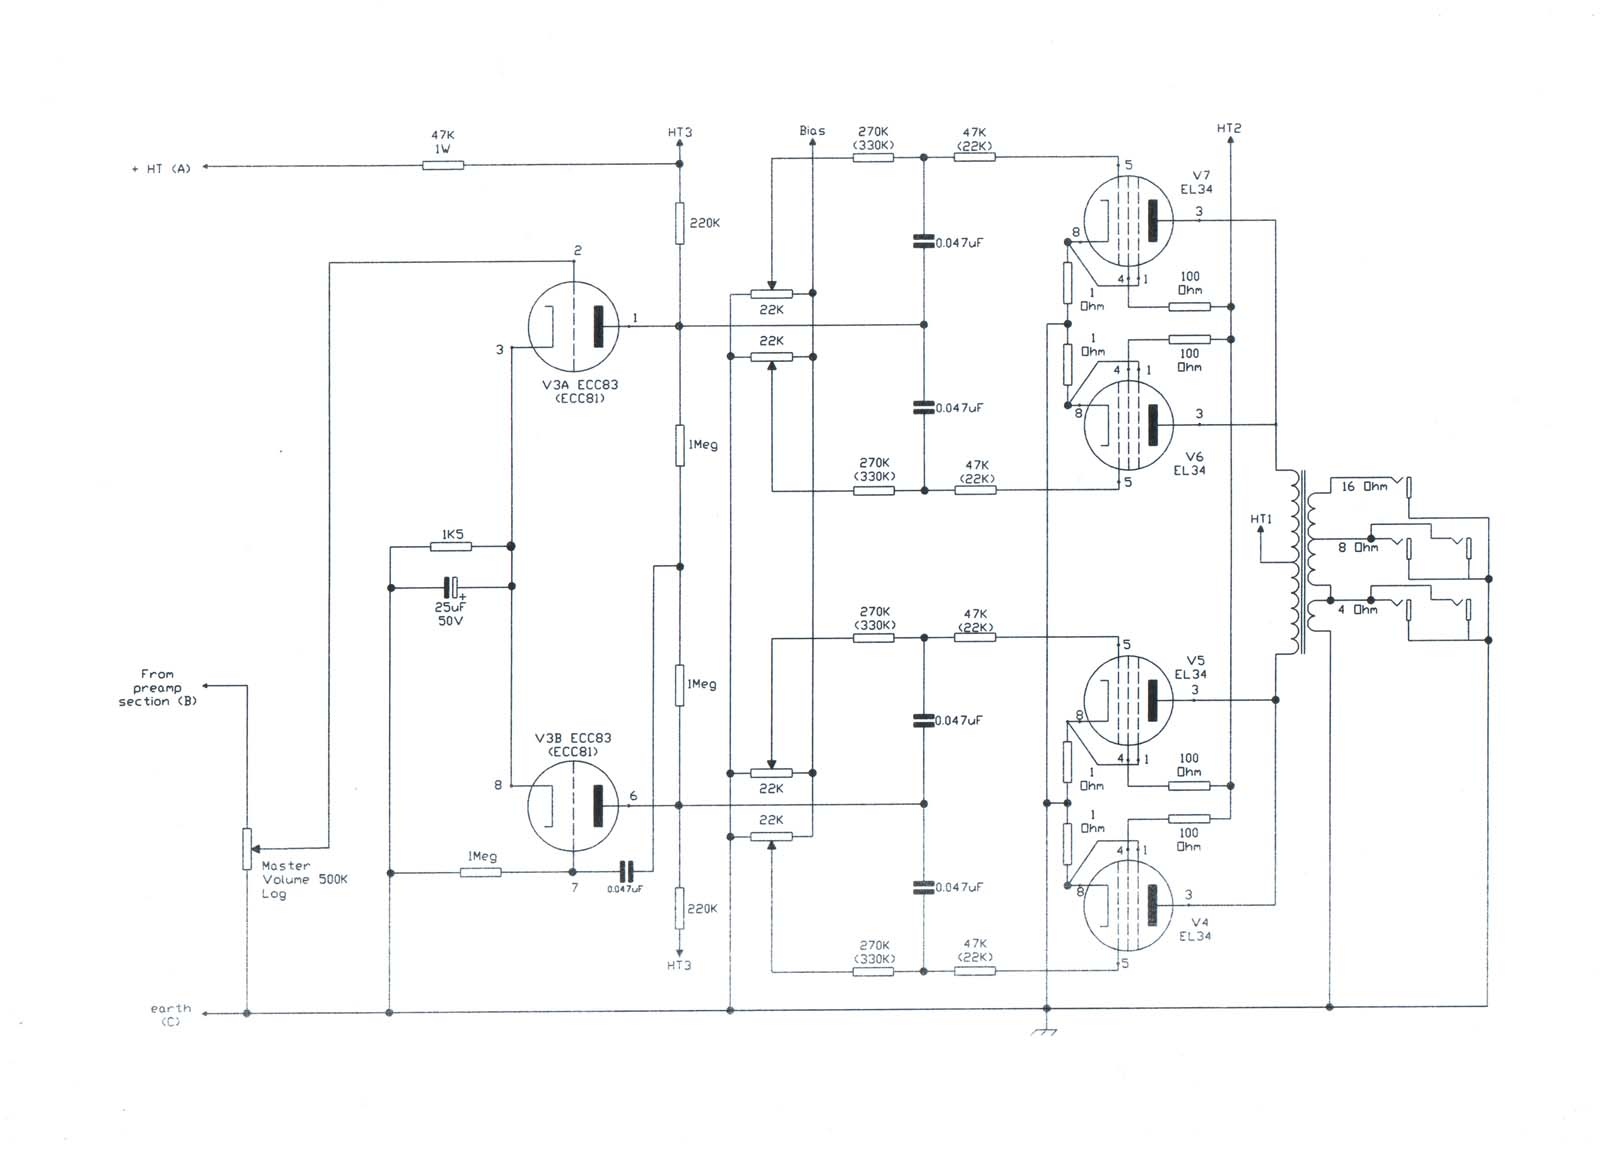 Vampower 100 Watt Mki Amplifier Schematic Diagrams